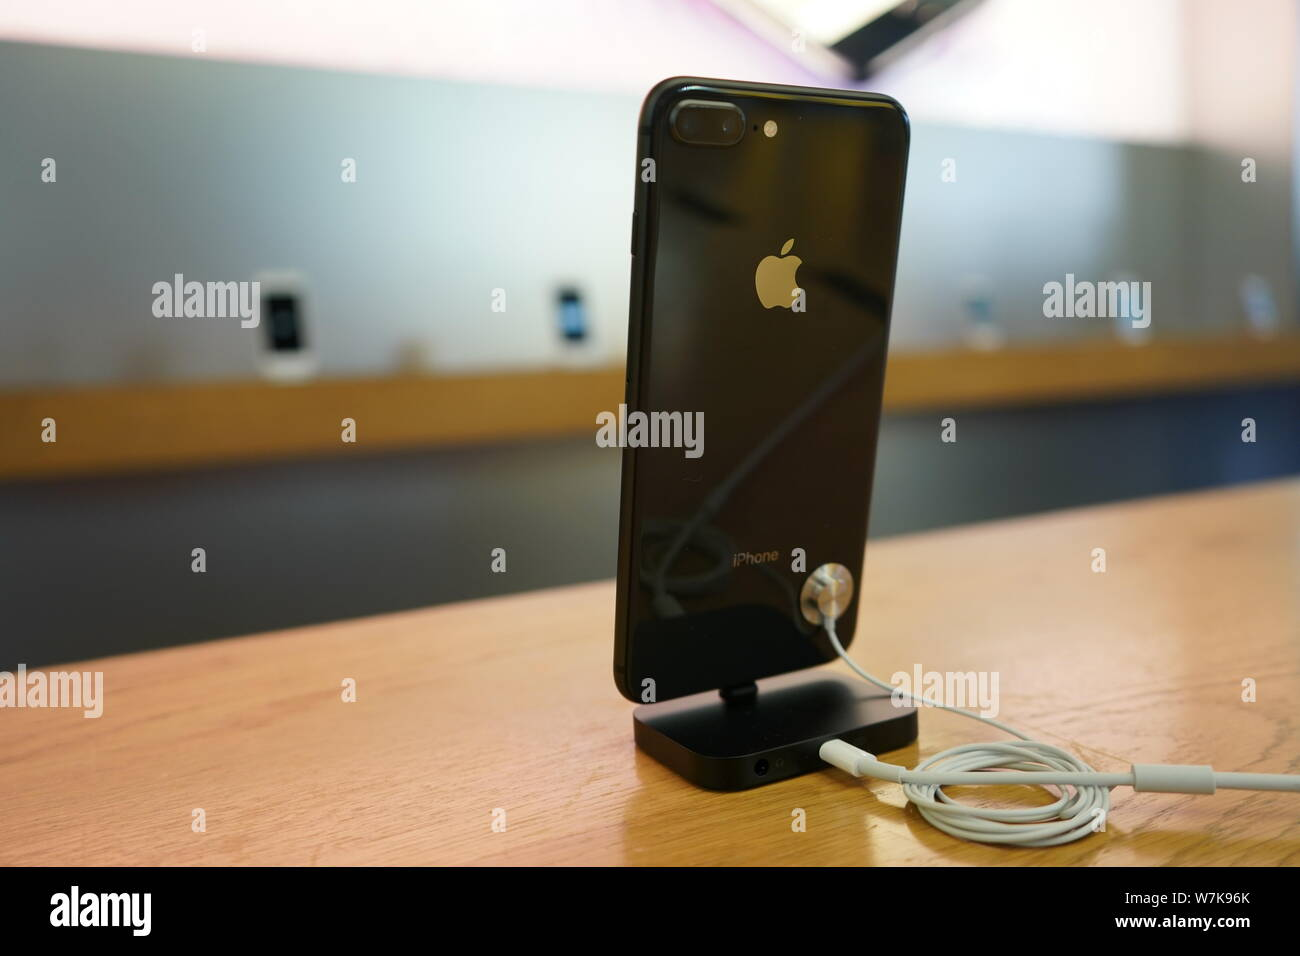 An iPhone 8 Plus smartphone is on display at the Apple Store in the Sanlitun shopping area in Beijing, China, 22 September 2017.   Apple Inc's launch Stock Photo